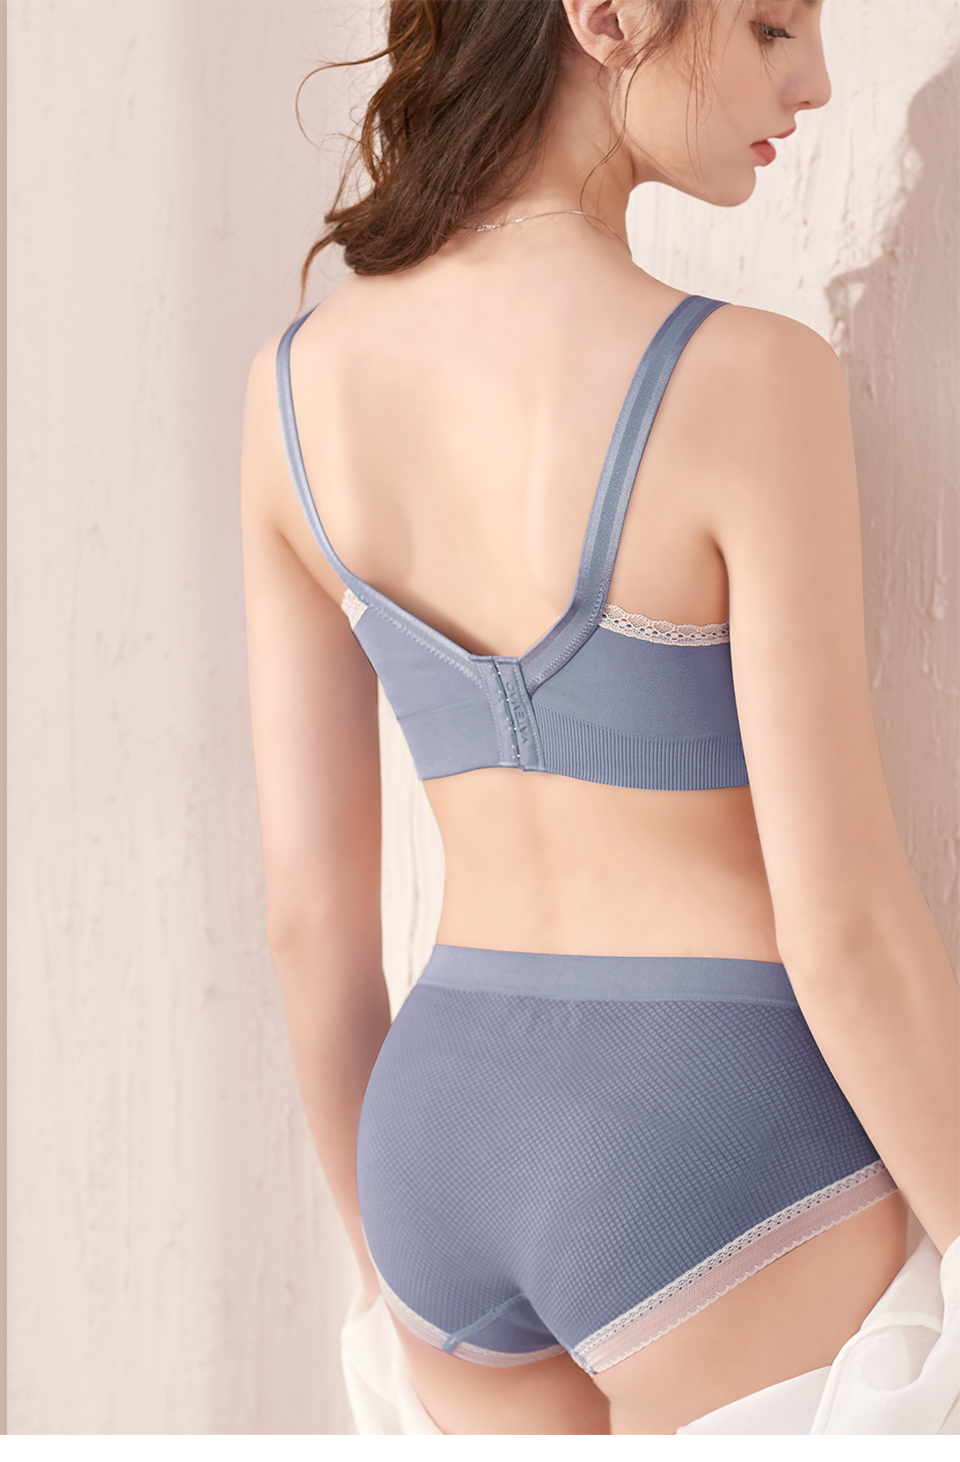 We find that the best way to calculate what size nursing bra you'll need, is to take your measurements at 26 weeks and add 1 additional cup size and 1 additional band size to your bra size